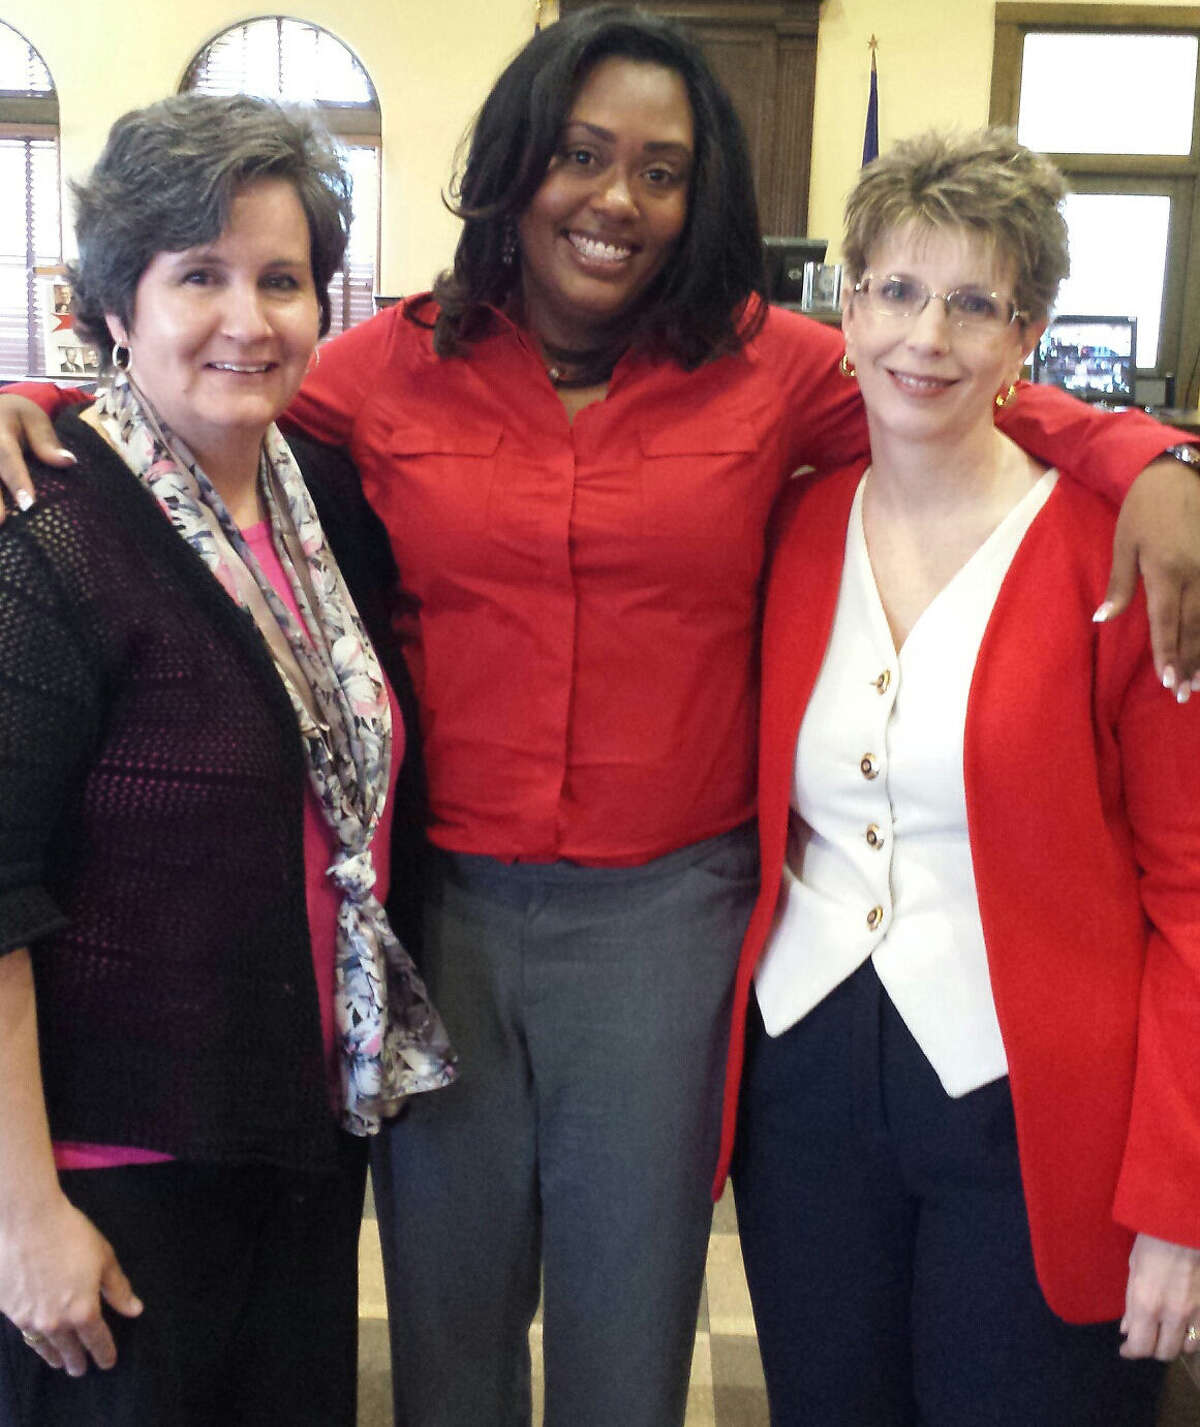 Allison Flood Lesh (center) with her attorneys Judith Wemmert (left) and Deanna Whitley, after they prevented the state of Texas from stopping the case.